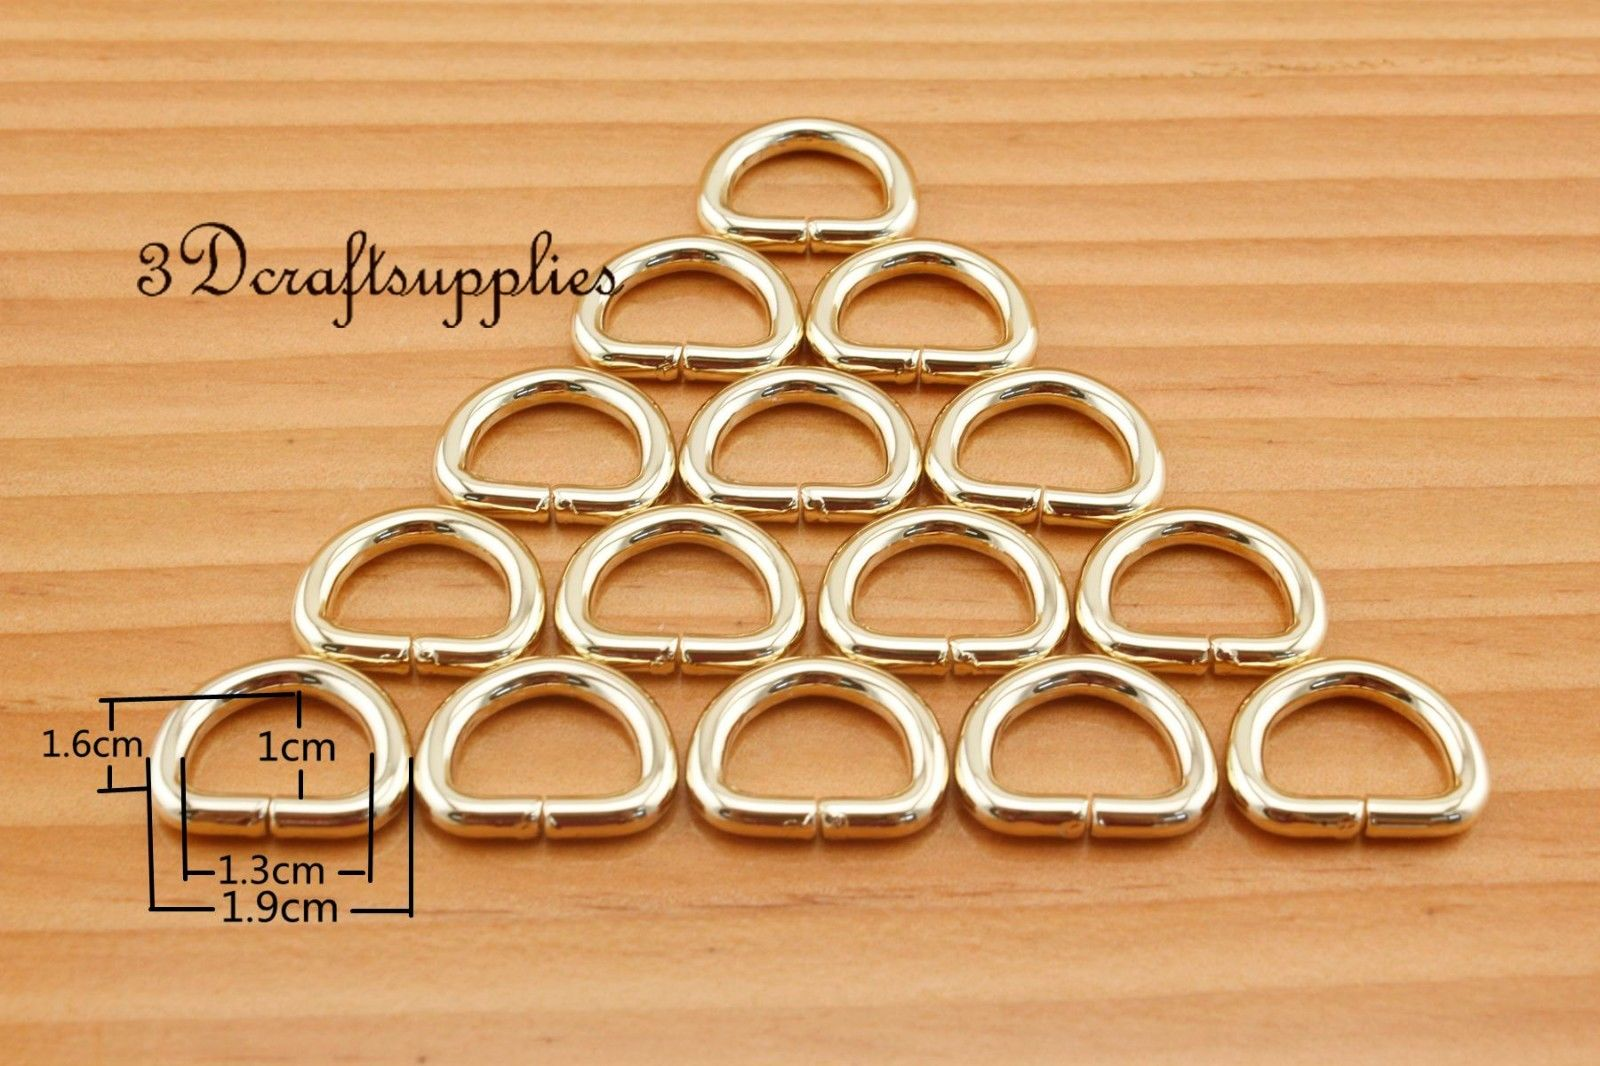 12MM d ring d-rings purse ring Webbing Strapping metal light gold 1/2 inch 20pcs U169